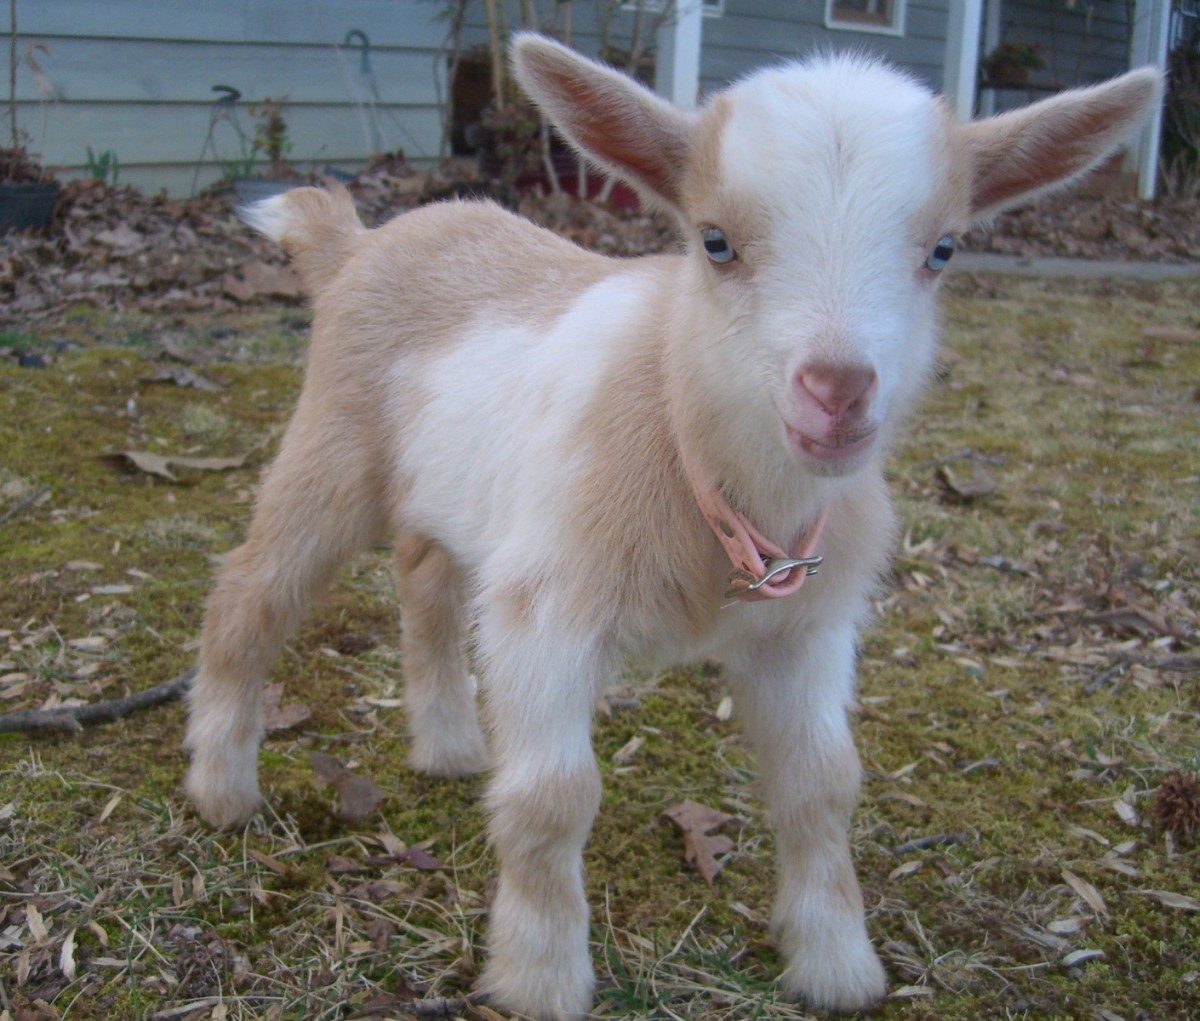 Cute Overload #2: Baby Goat Tries To Baa